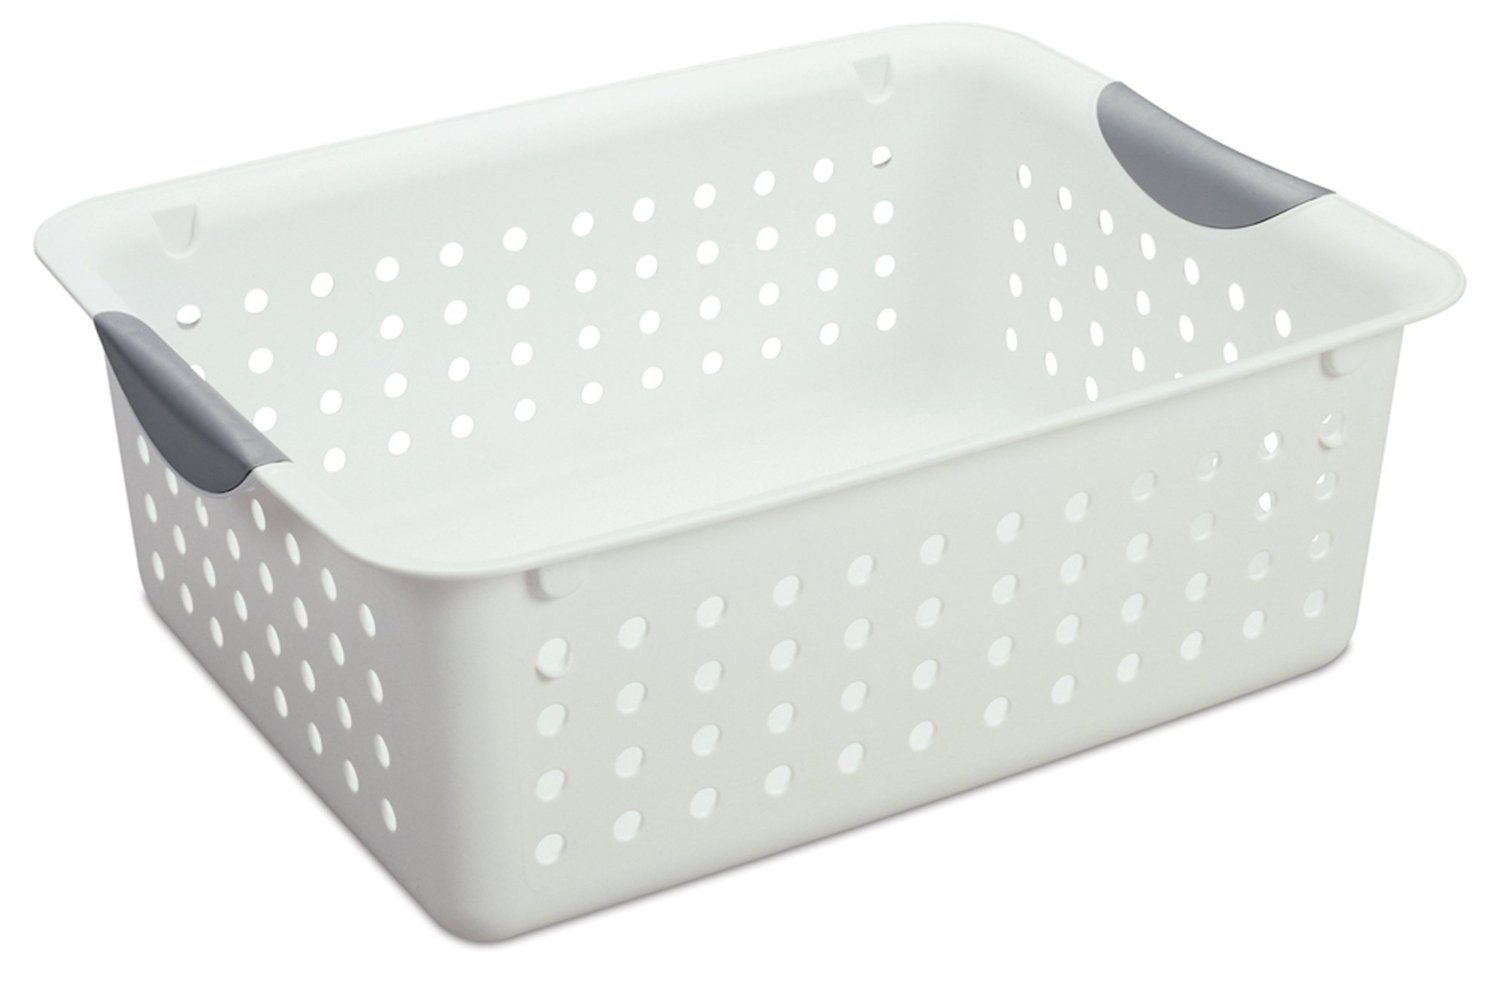 Click here to buy 12) Sterilite 16248006 Medium Ultra Plastic Storage Bin Organizer Basket White by Sterilite.